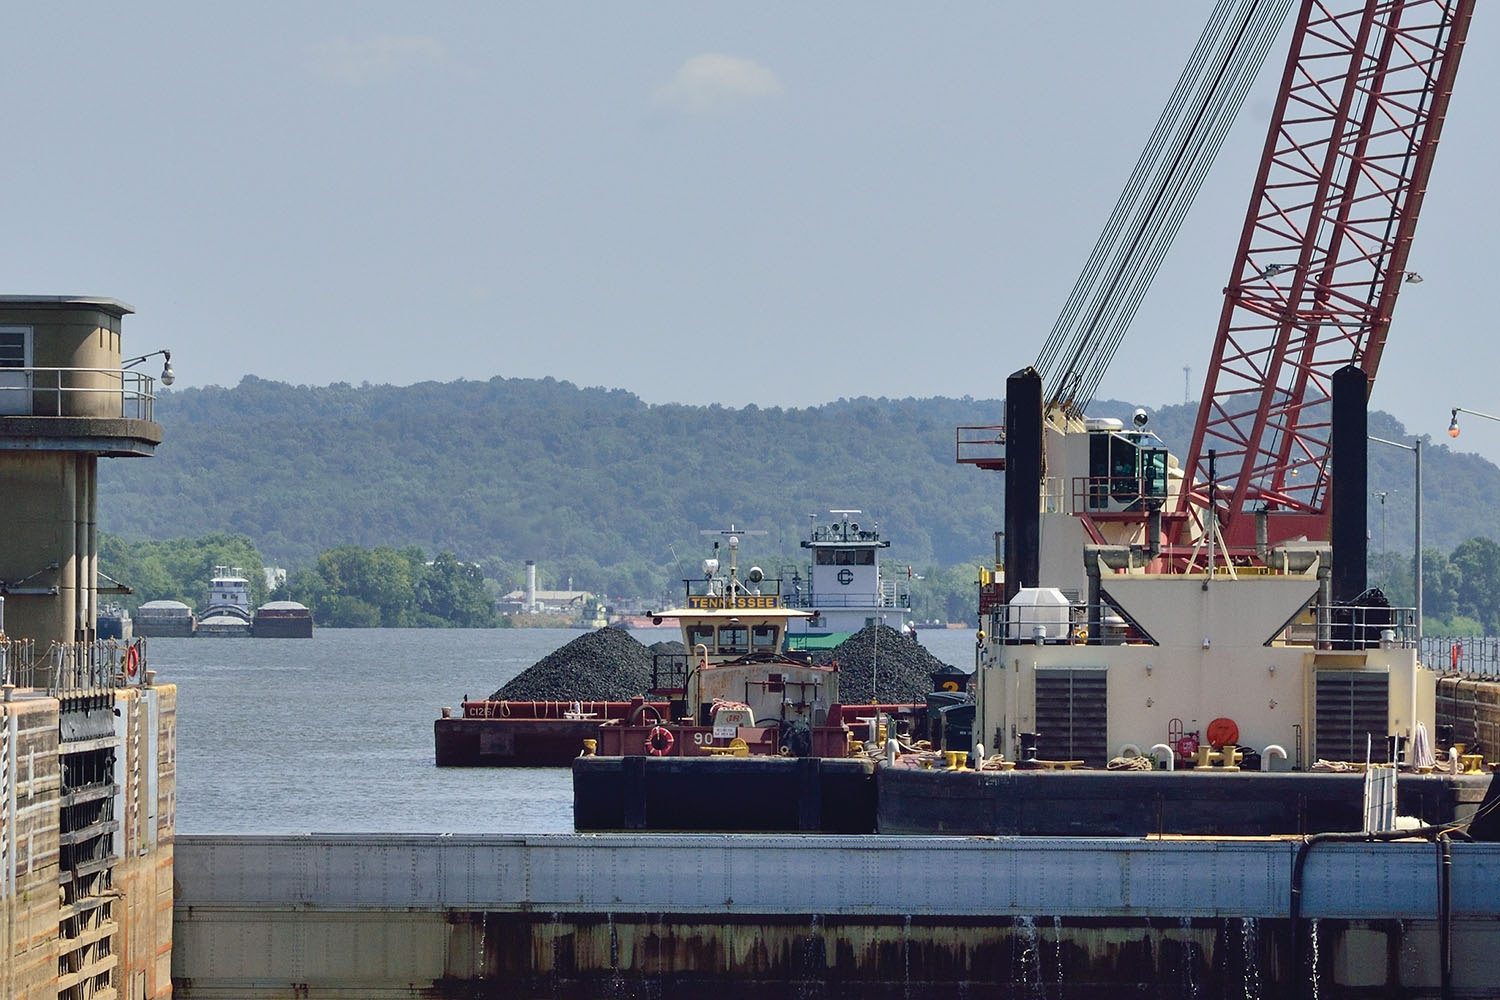 A Crounse Corporation boat has tied off its tow at the upper approach of the Willow Island Locks and Dam as it prepares to assist upbound boats through the auxiliary chamber during repairs to the main lock. (Photo by Jim Ross)